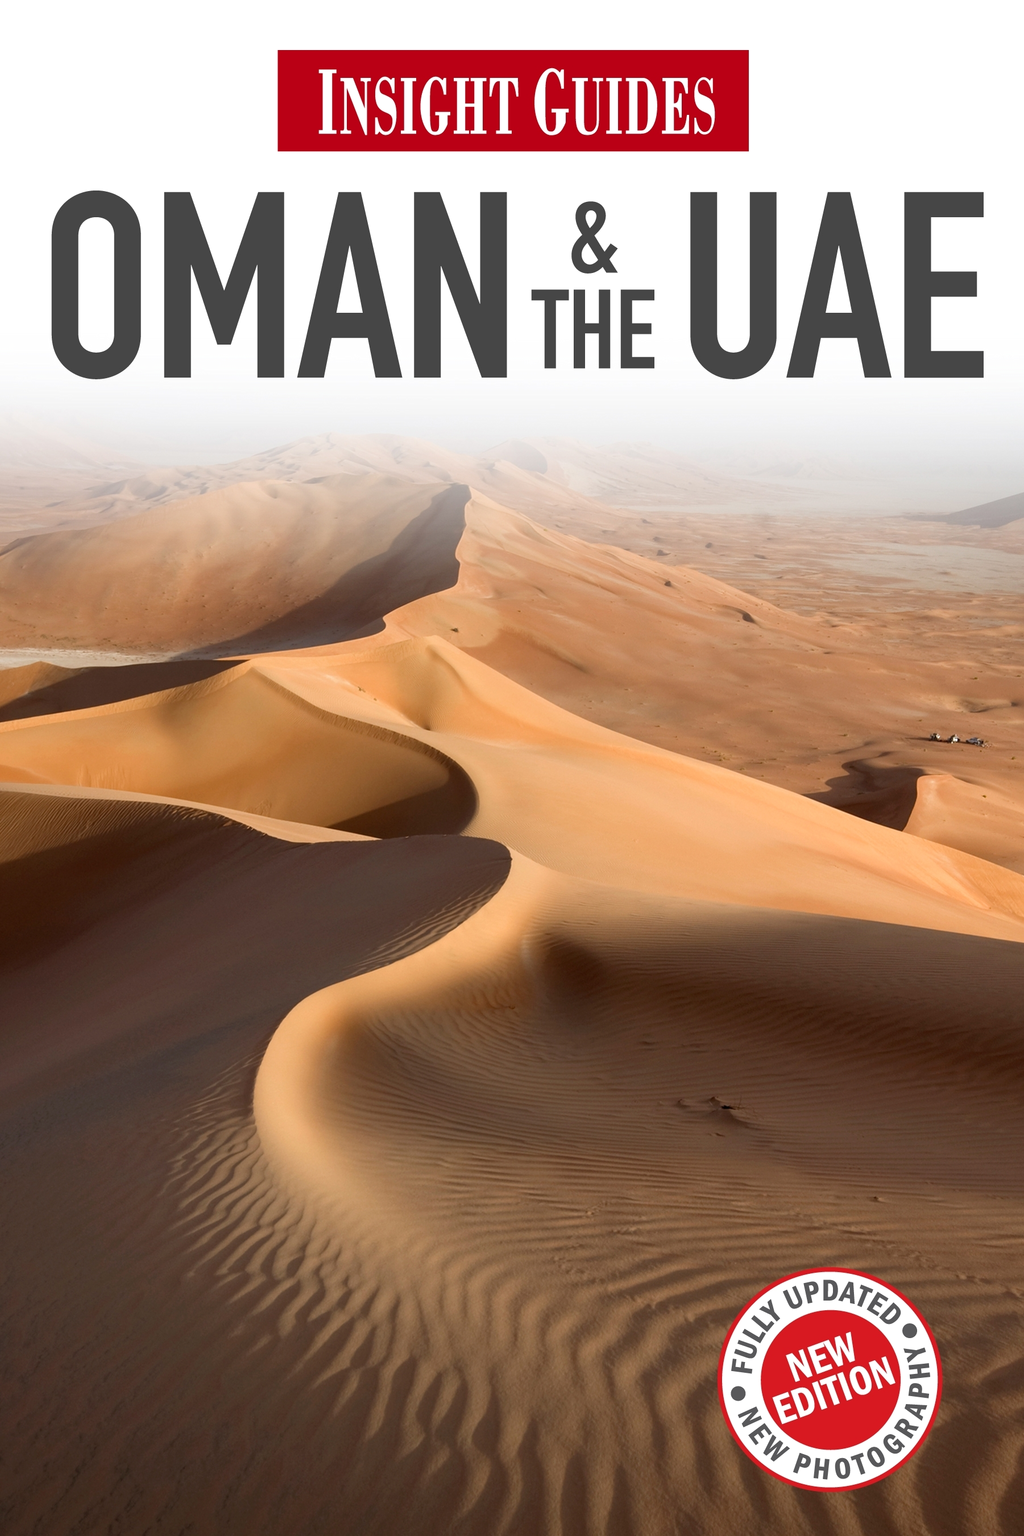 Insight Guides: Oman & the UAE By: Insight Guides